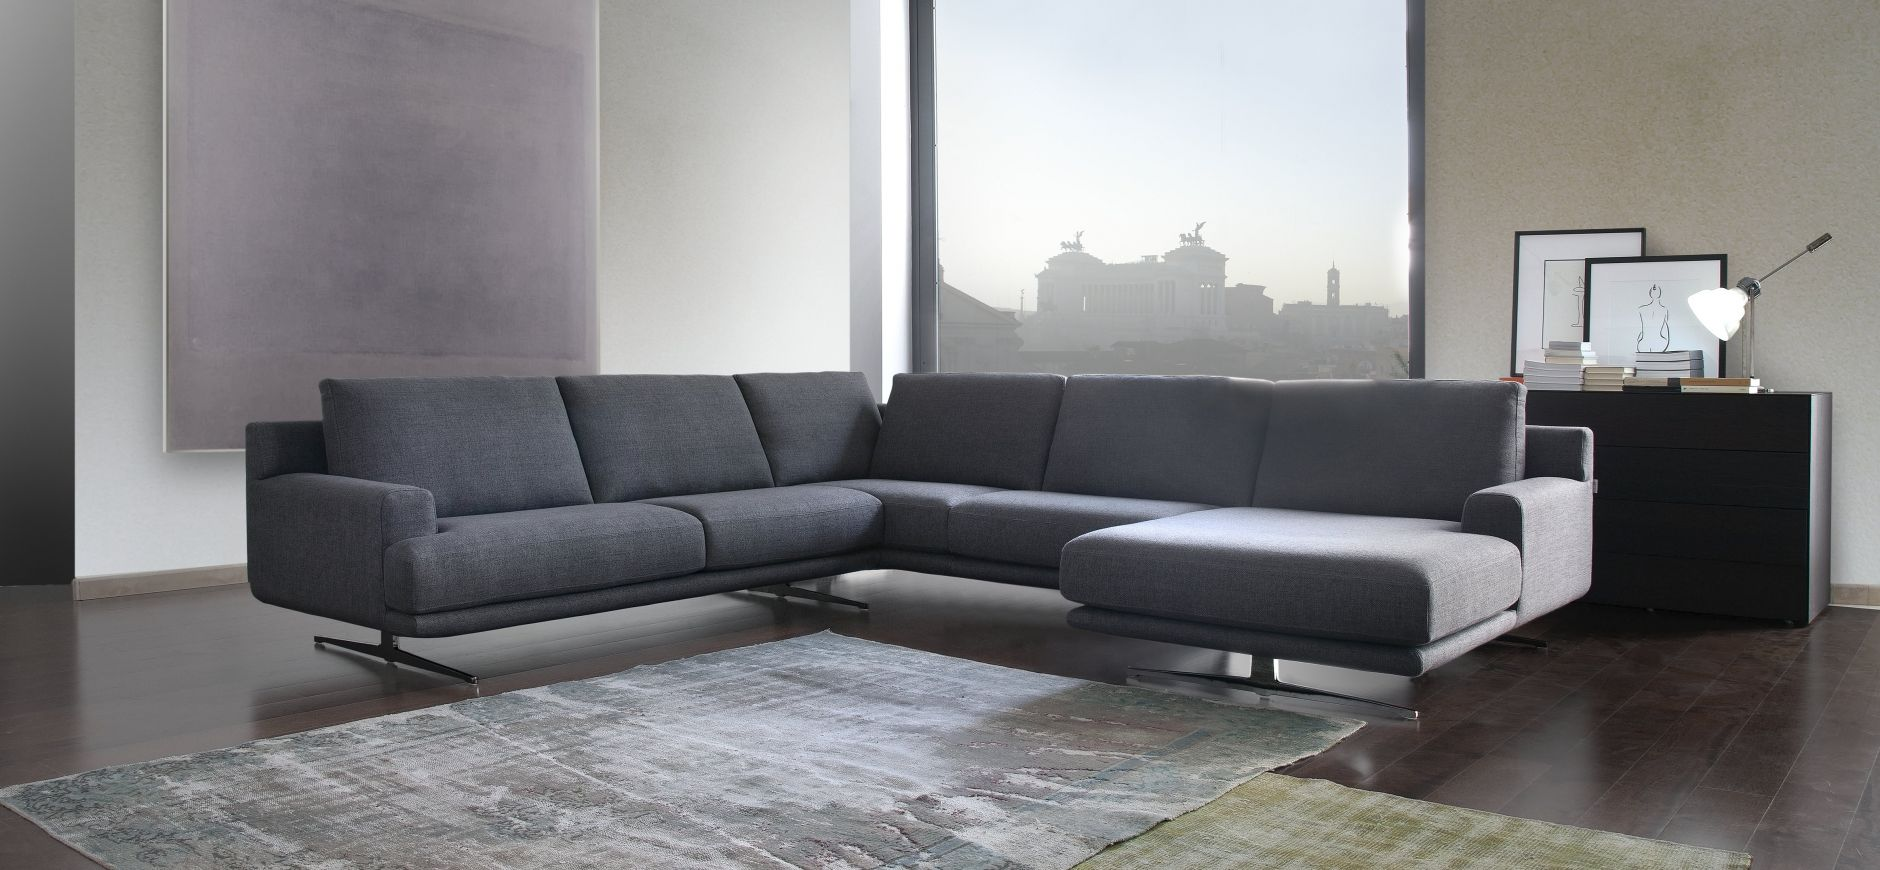 Sectional Sofa Calia Italia Cosmo 1020 1024 Series